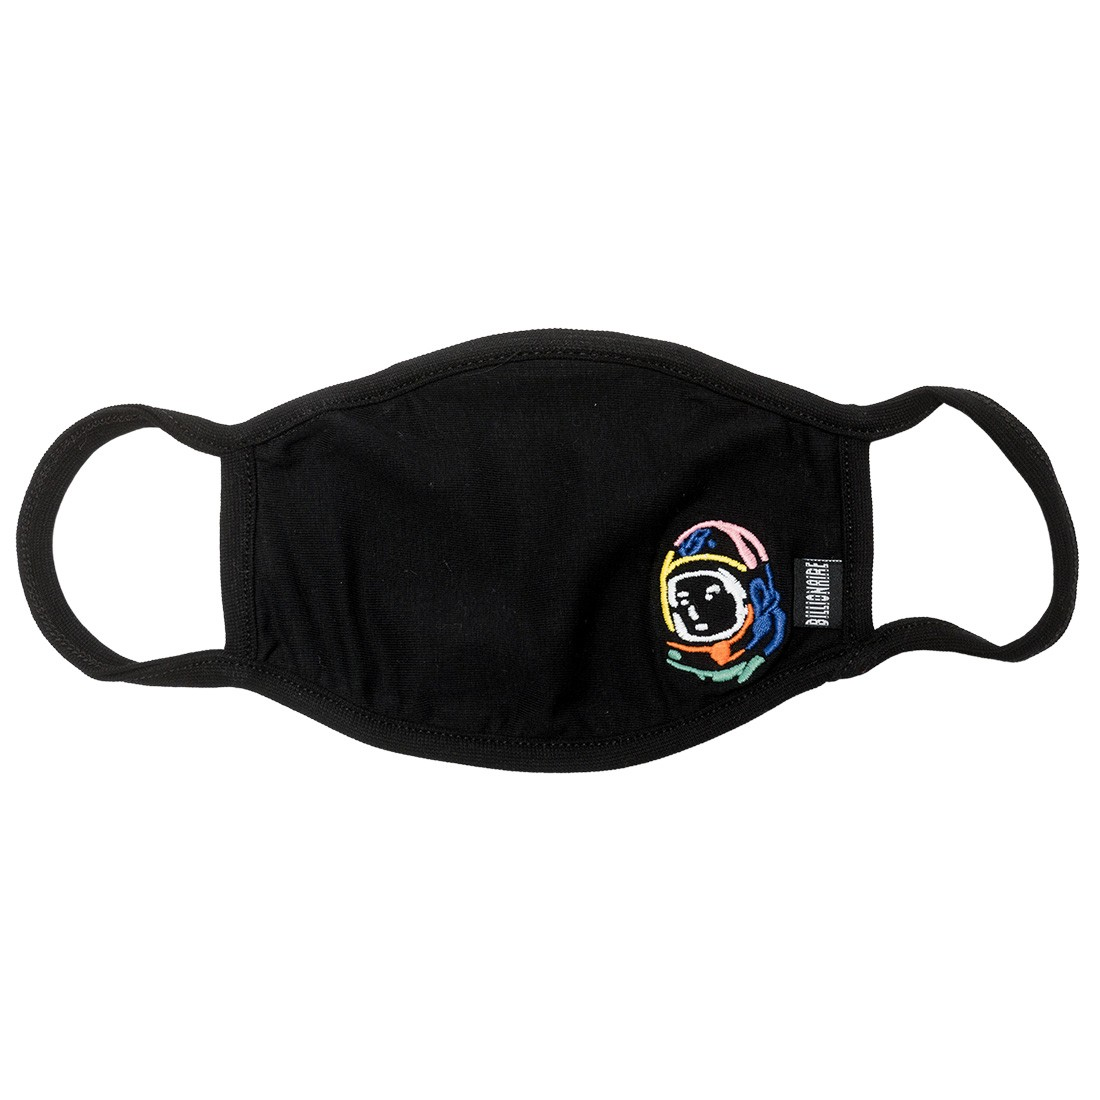 Billionaire Boys Club Multi Helmet Mask (black)